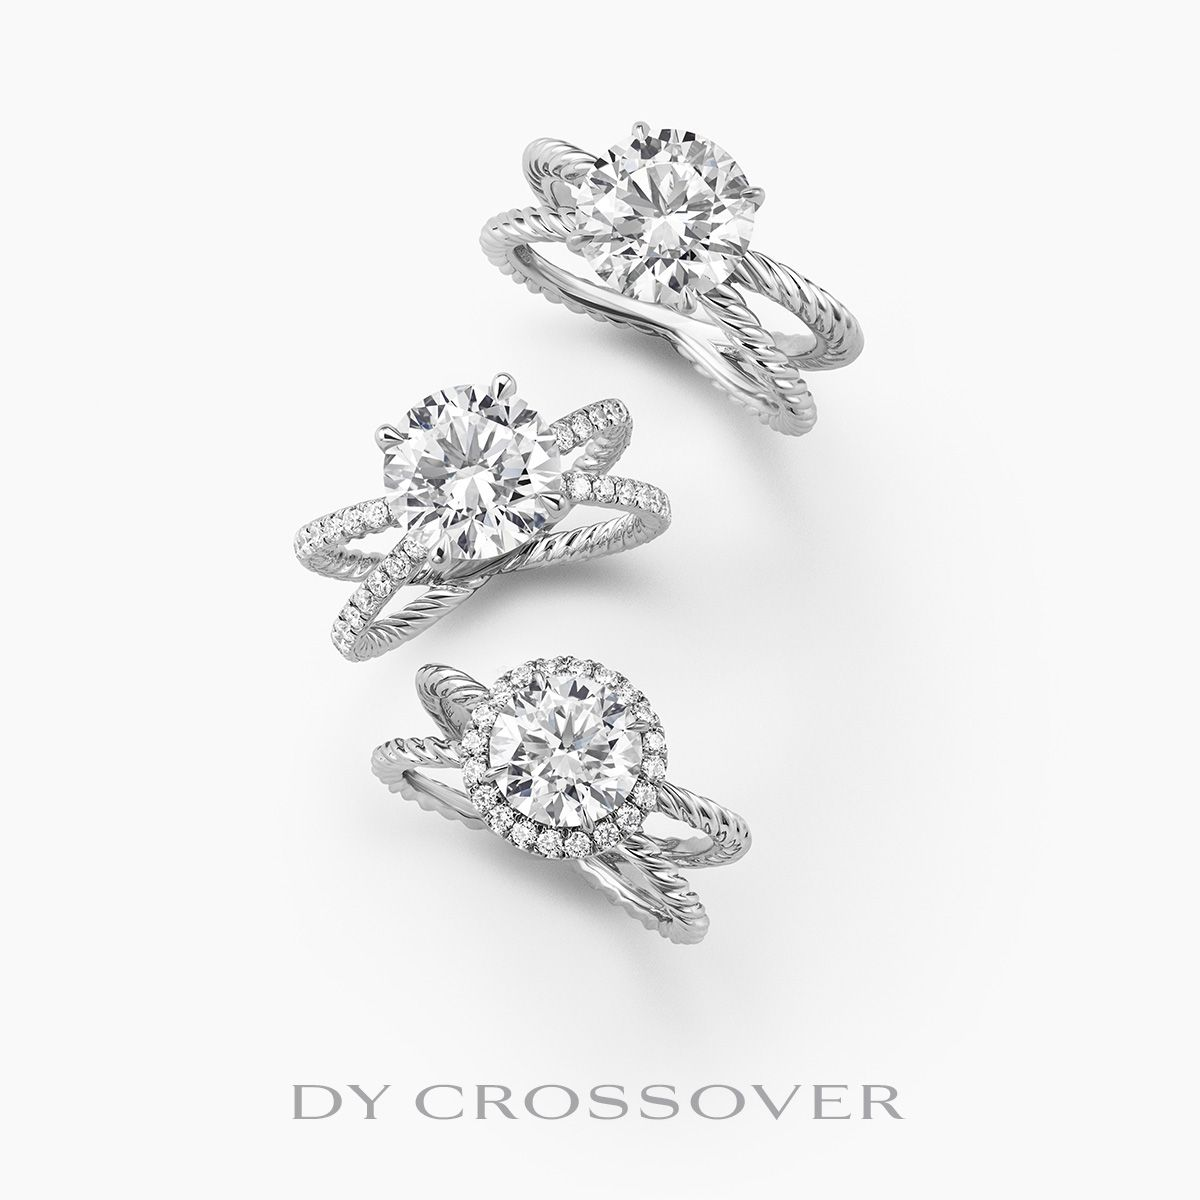 david yurman wedding bands Celebrate your love story with the unique artistry of a David Yurman engagement ring or wedding band View the full collection today